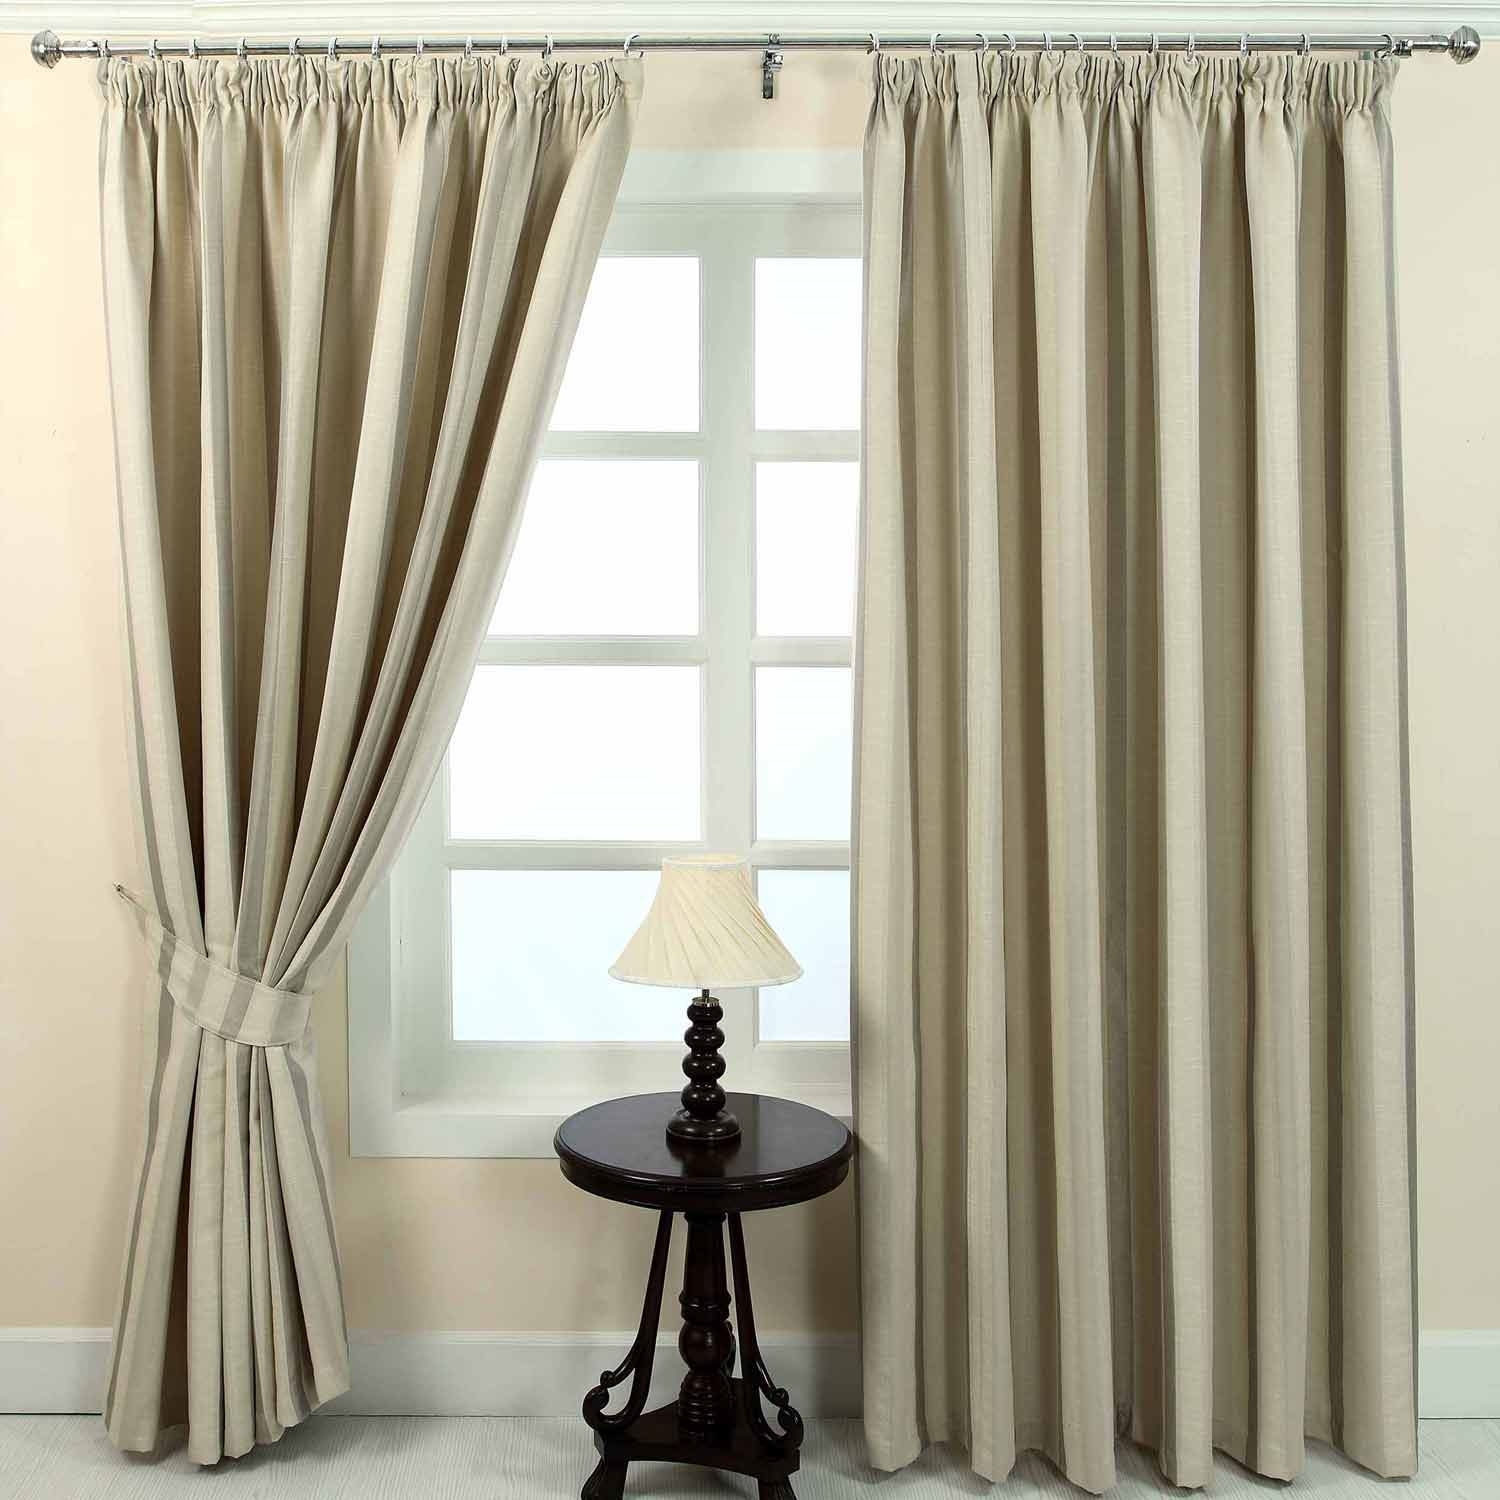 Pencil Pleat Jacquard Striped Curtains Fully Lined Blue Cream Intended For Green And Cream Striped Curtains (Image 12 of 15)